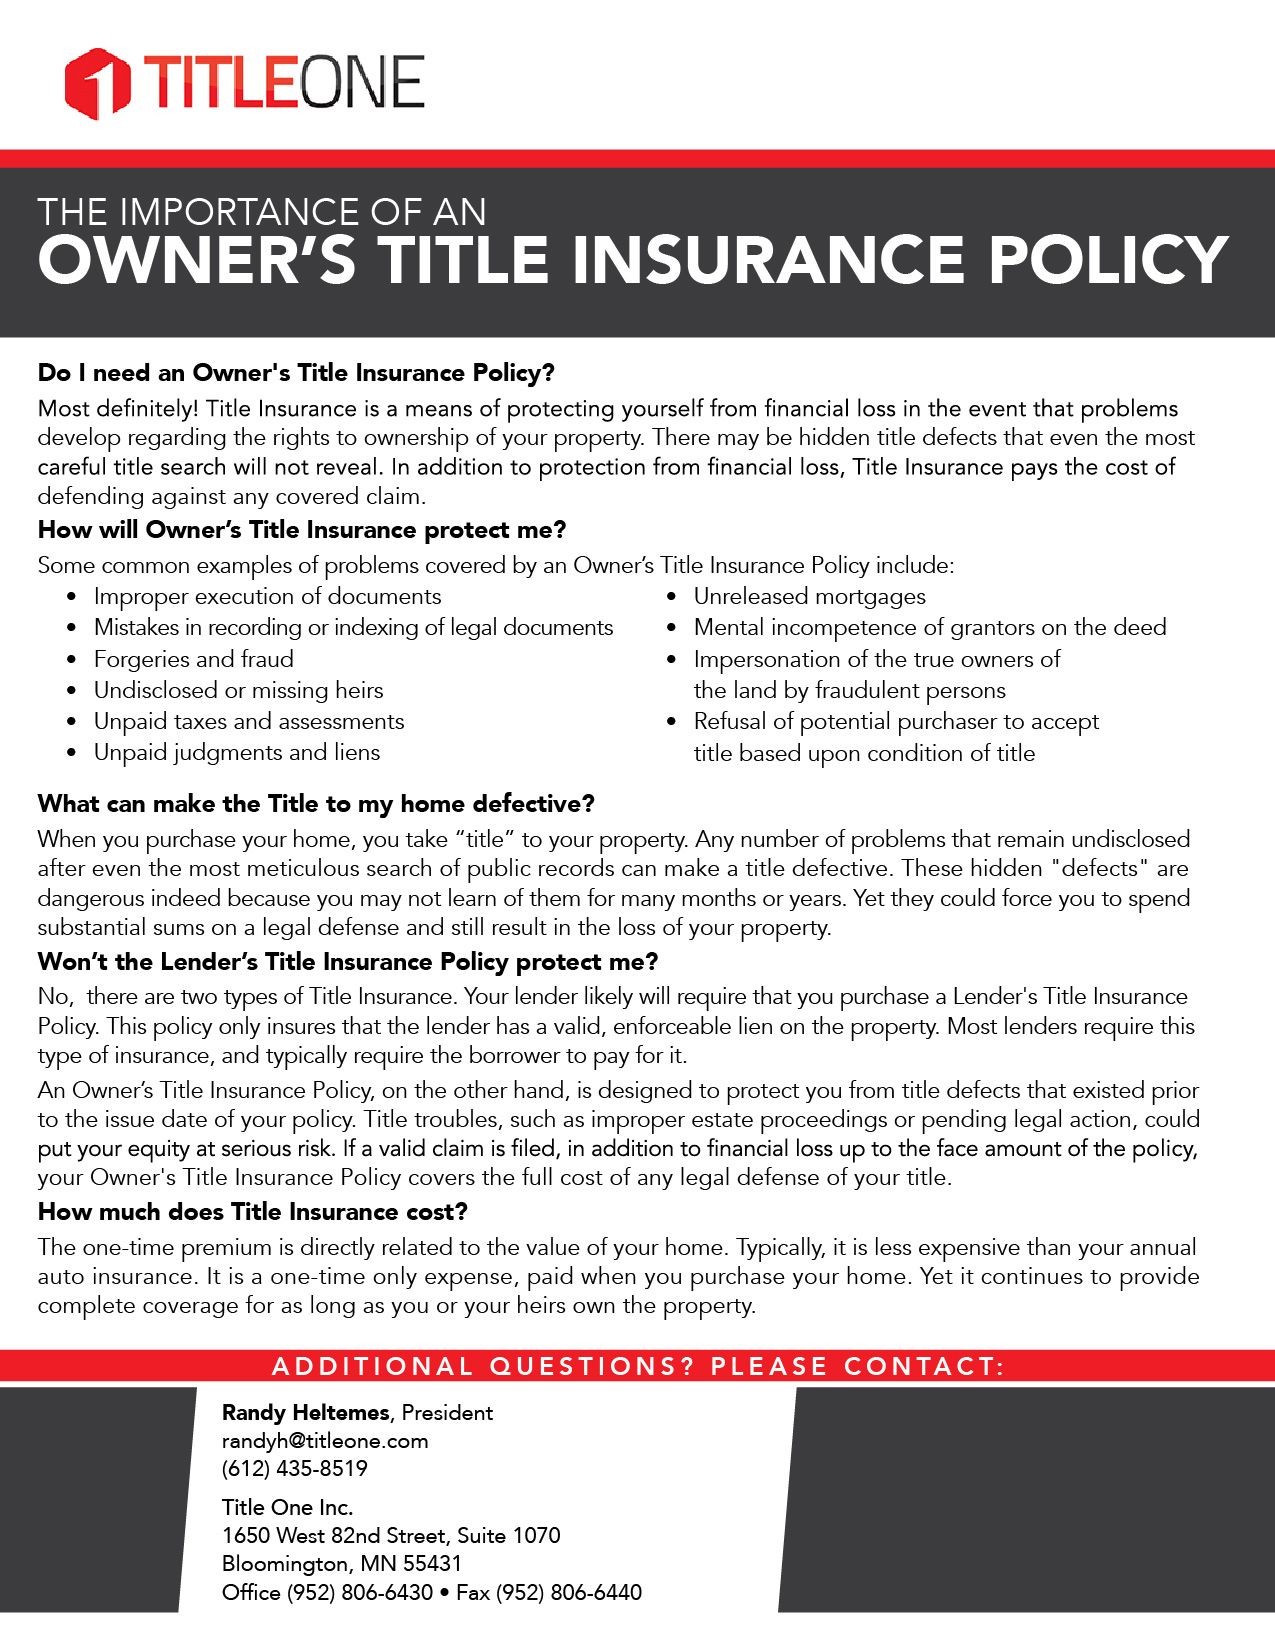 Owners Title Insurance Policy Title Insurance Insurance